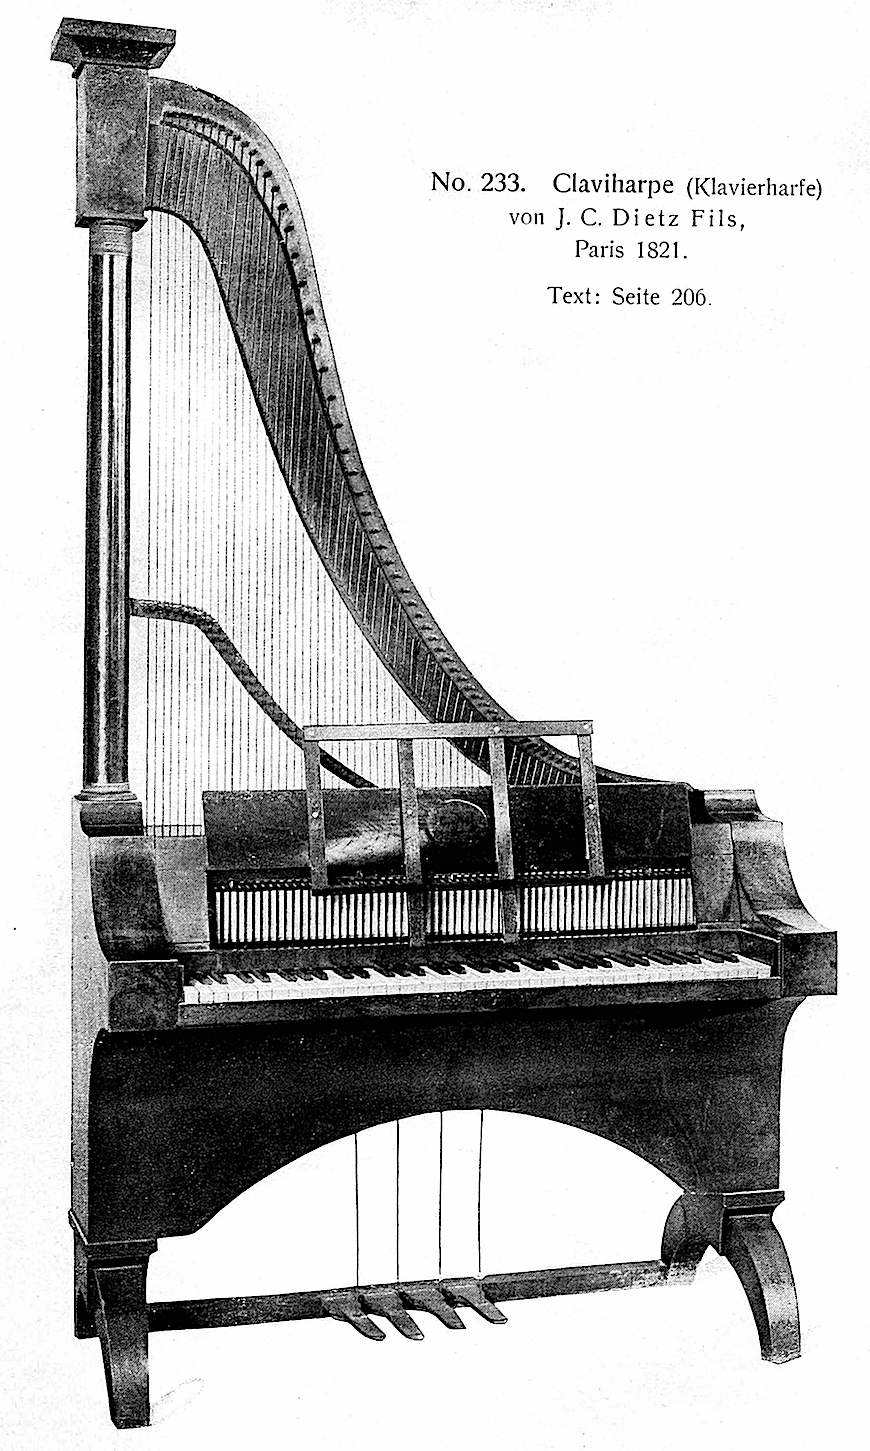 a photograph of an 1821 Claviharpe, keyboard plucks harp strings